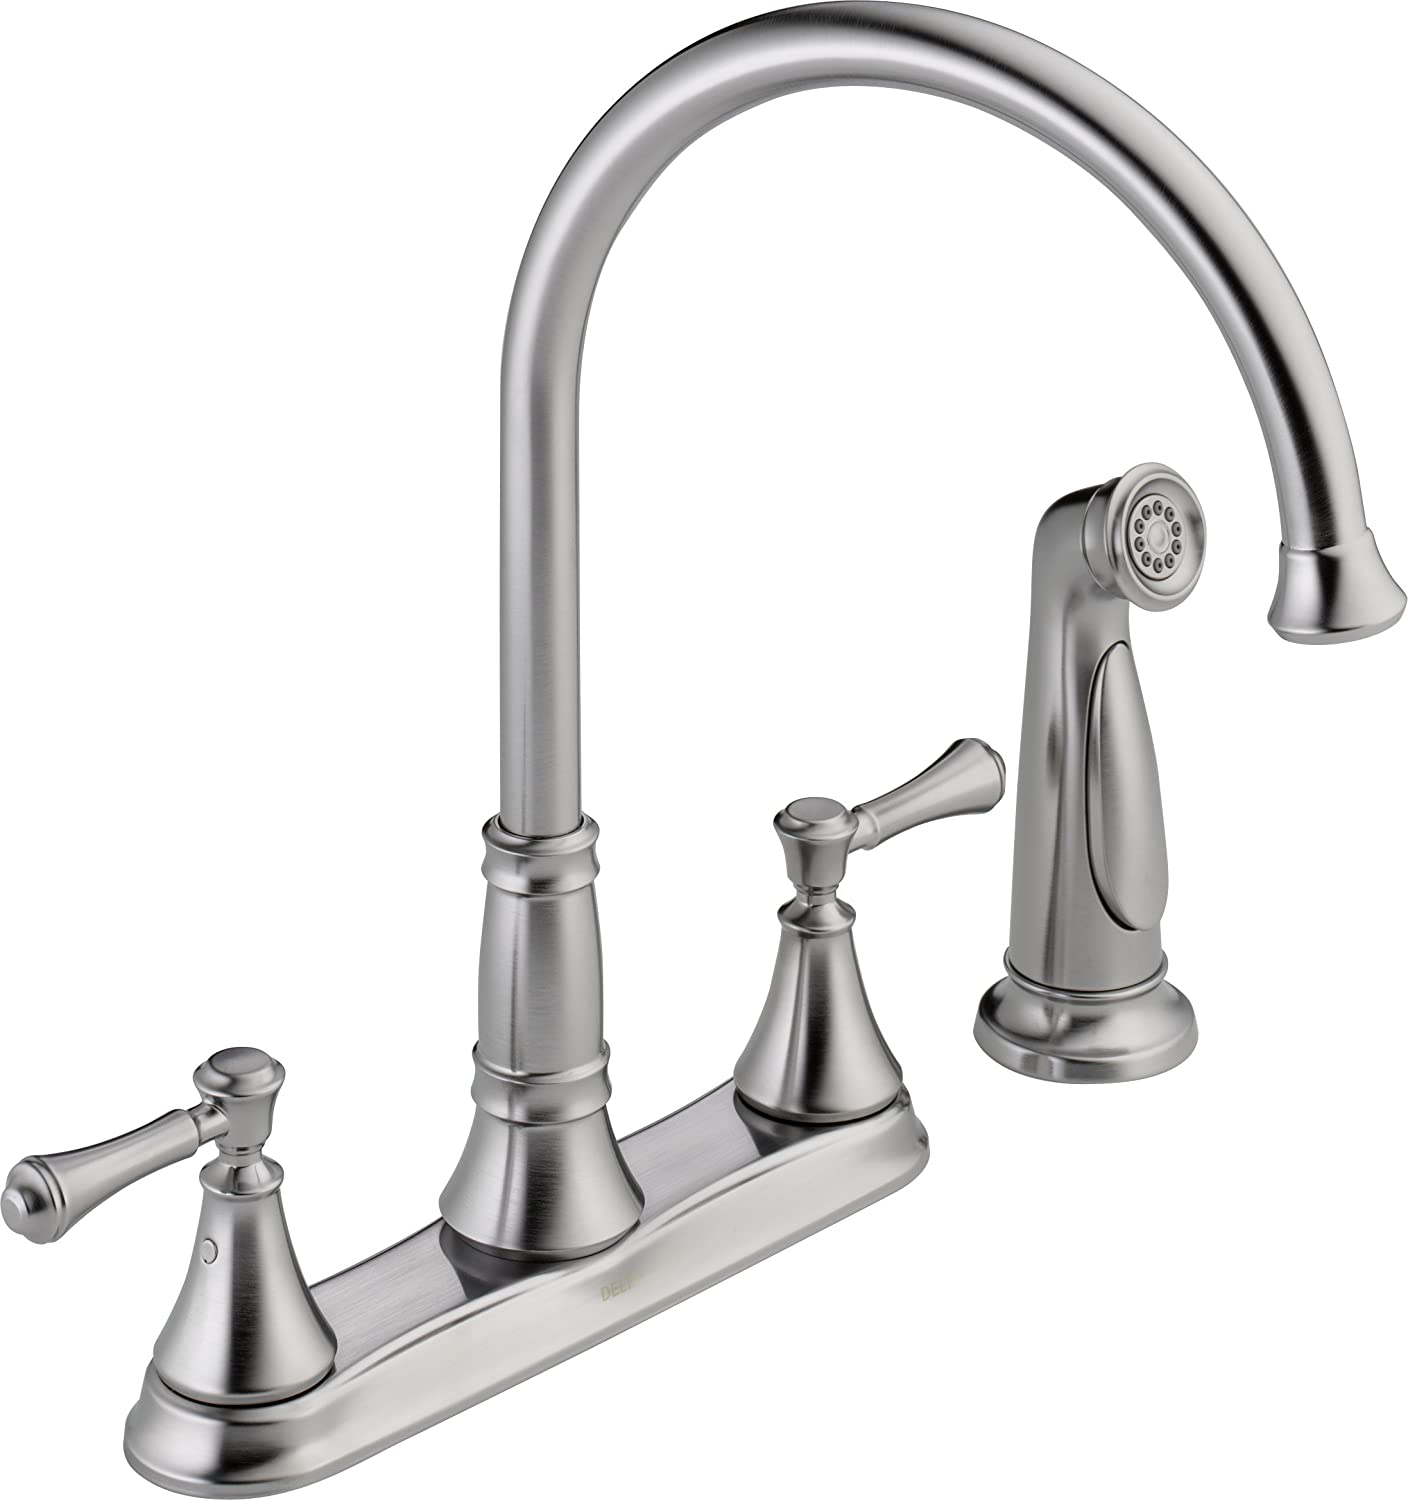 Delta Faucet 2497LF AR Cassidy, Two Handle Kitchen Faucet With Spray,  Arctic Stainless   Touch On Kitchen Sink Faucets   Amazon.com